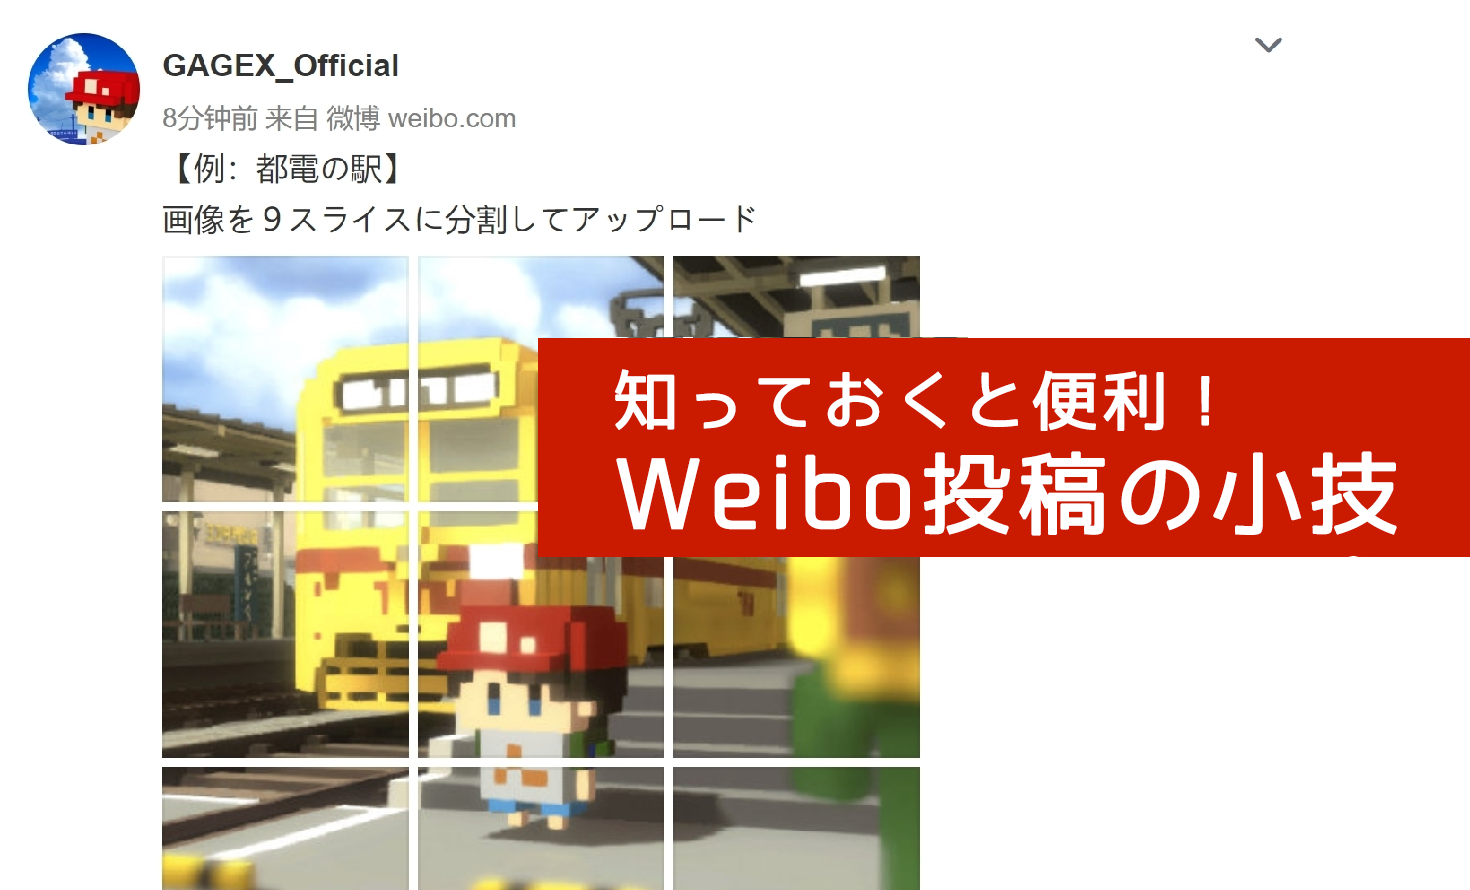 Weiboを使って情報発信してみよう!~投稿編~